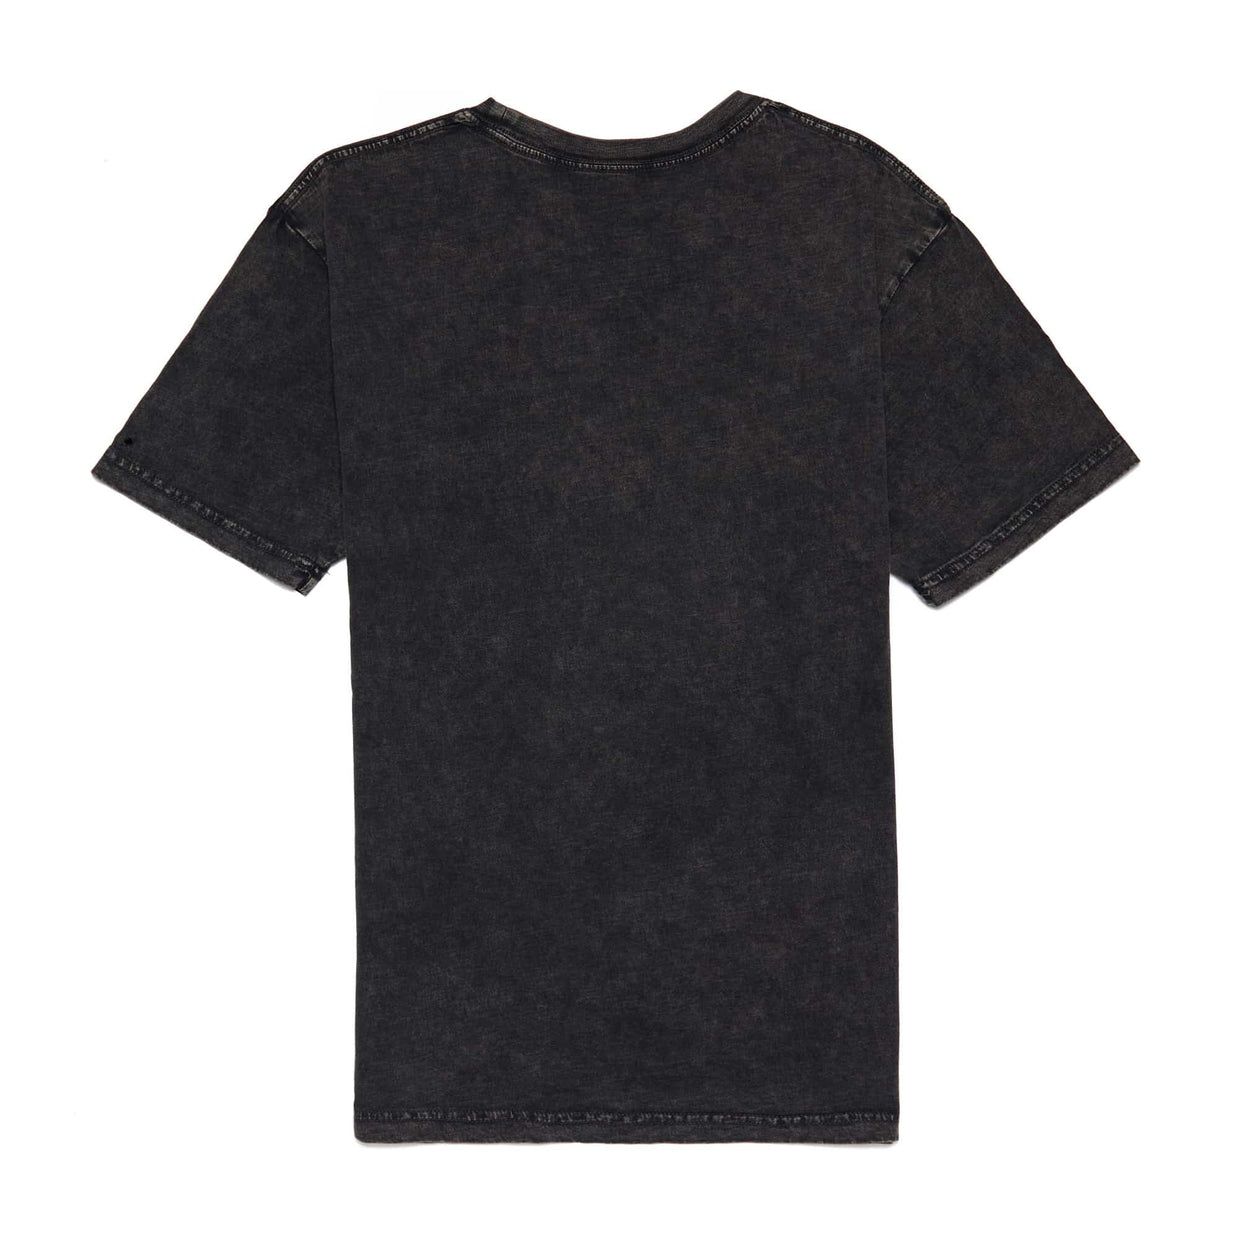 'Warped' Black Stone Wash Tee